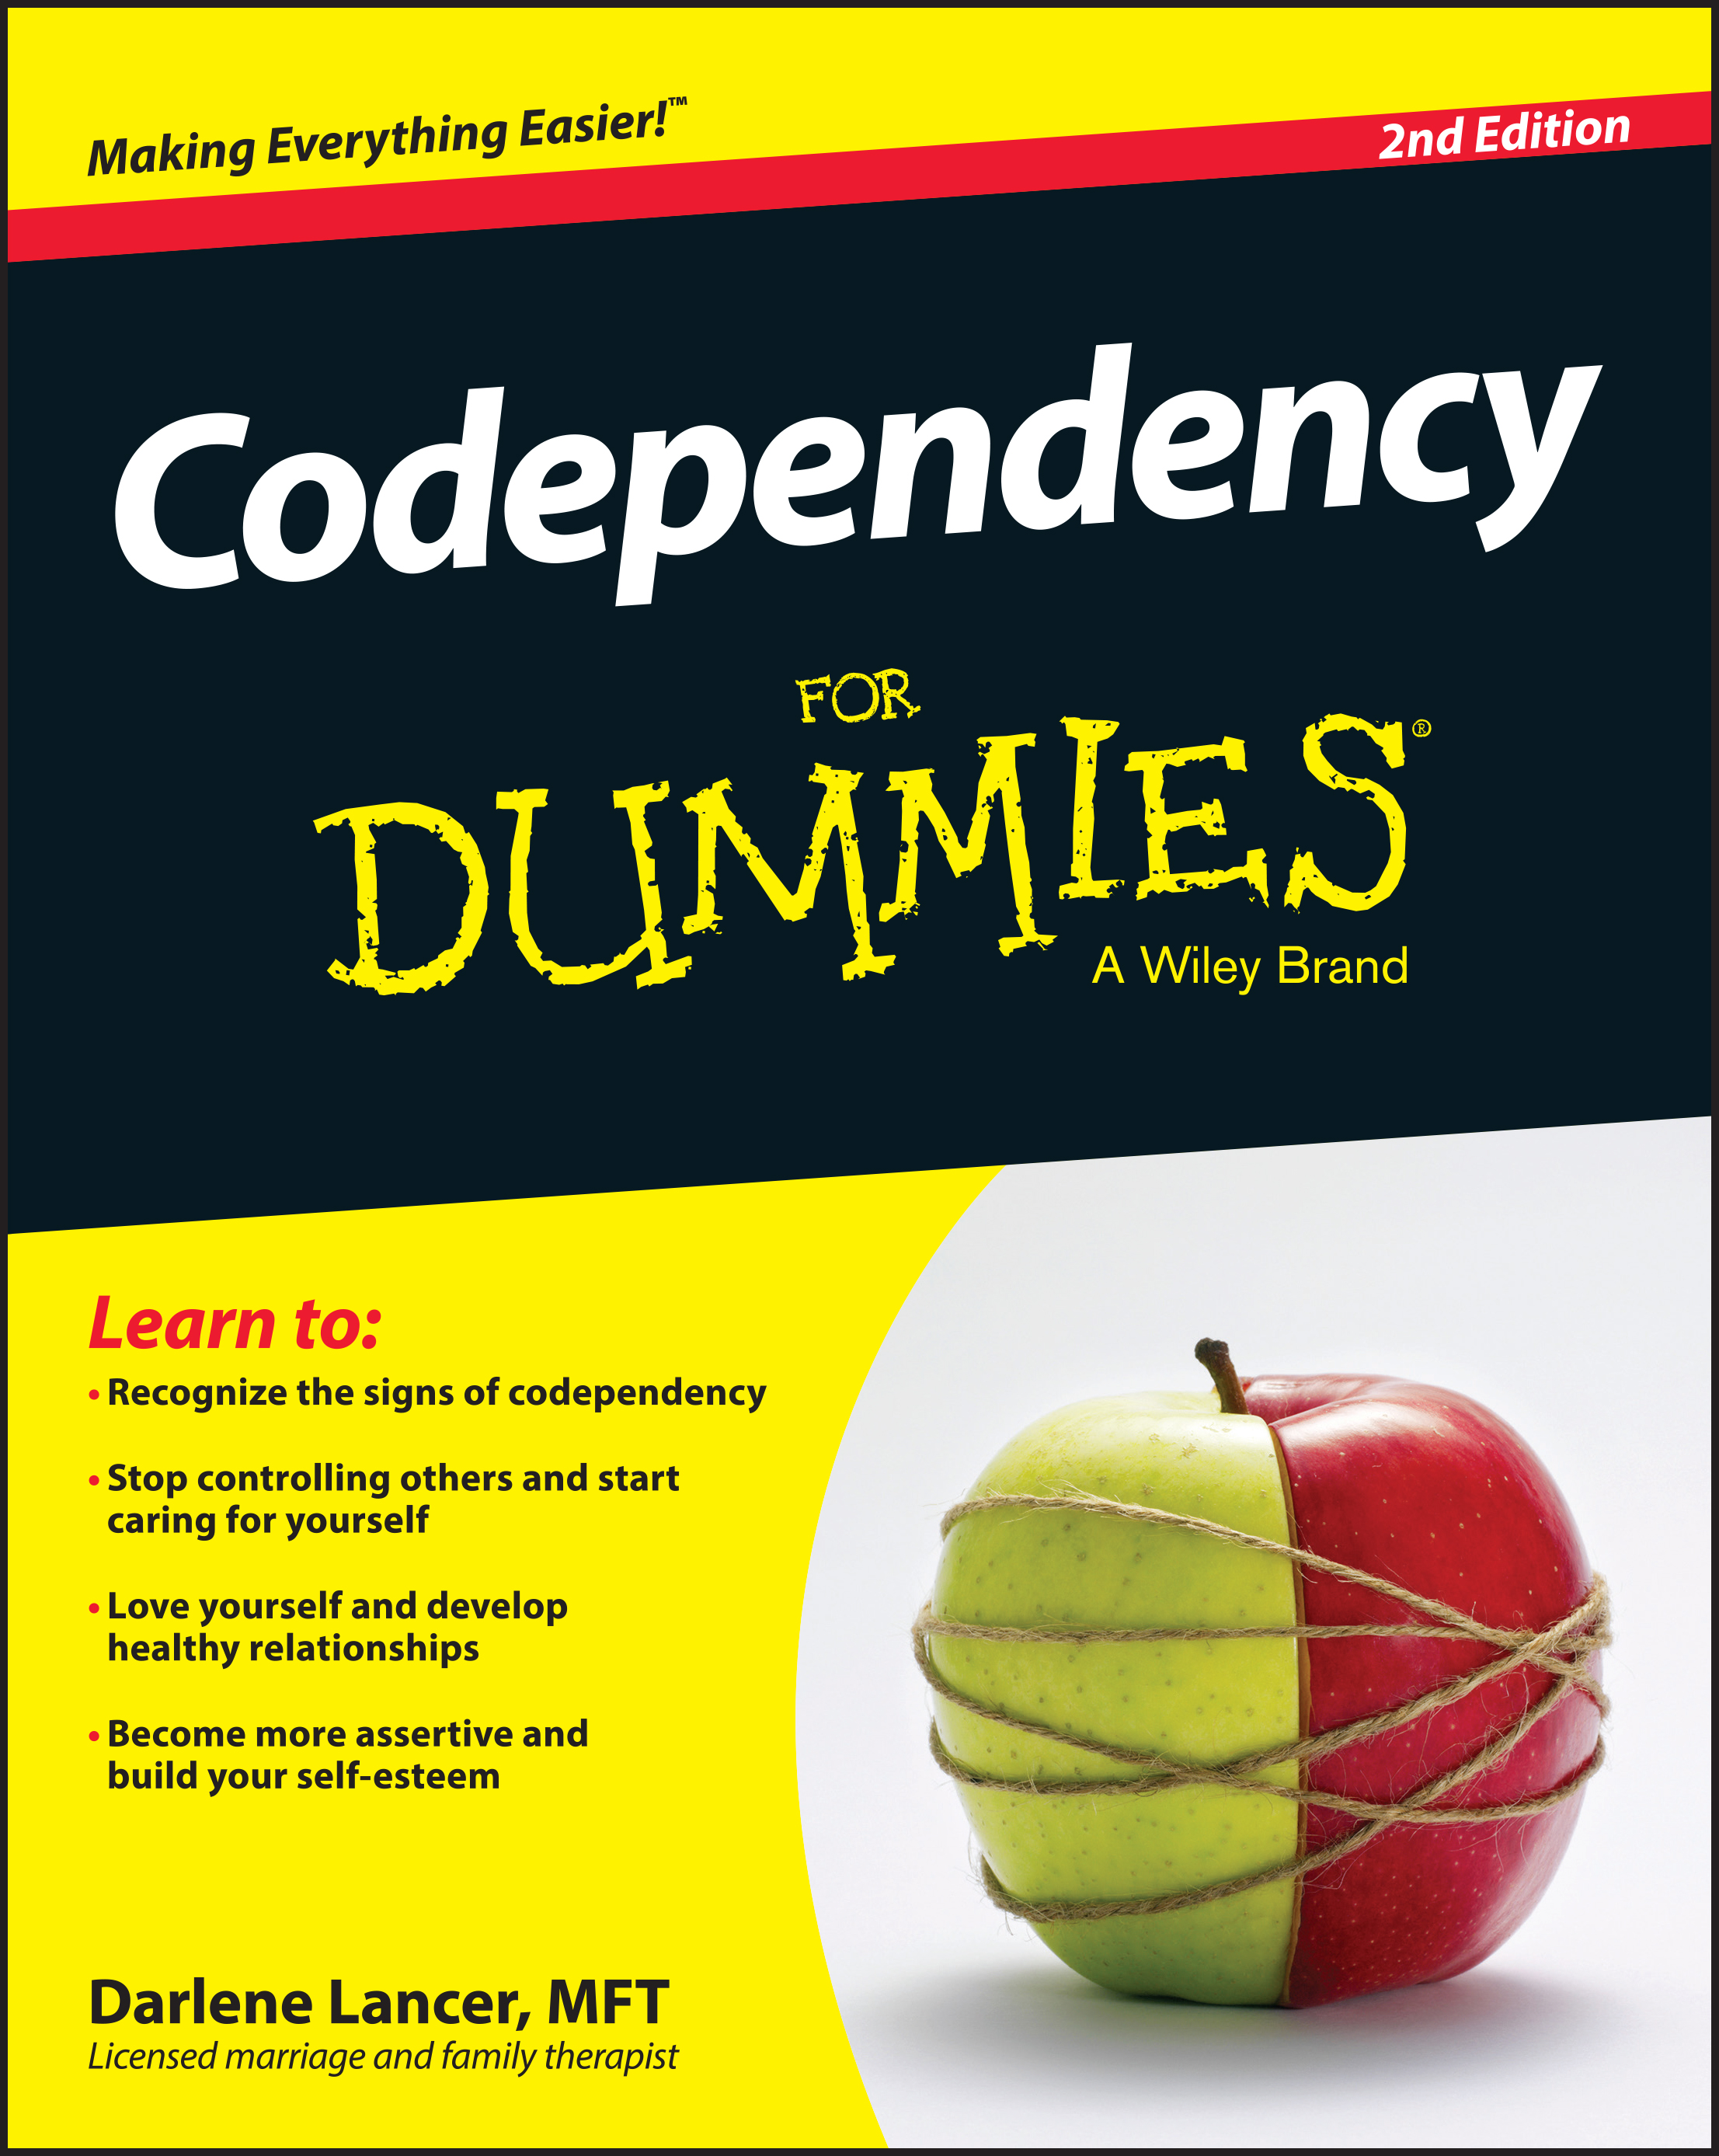 What is the definition of codependency?